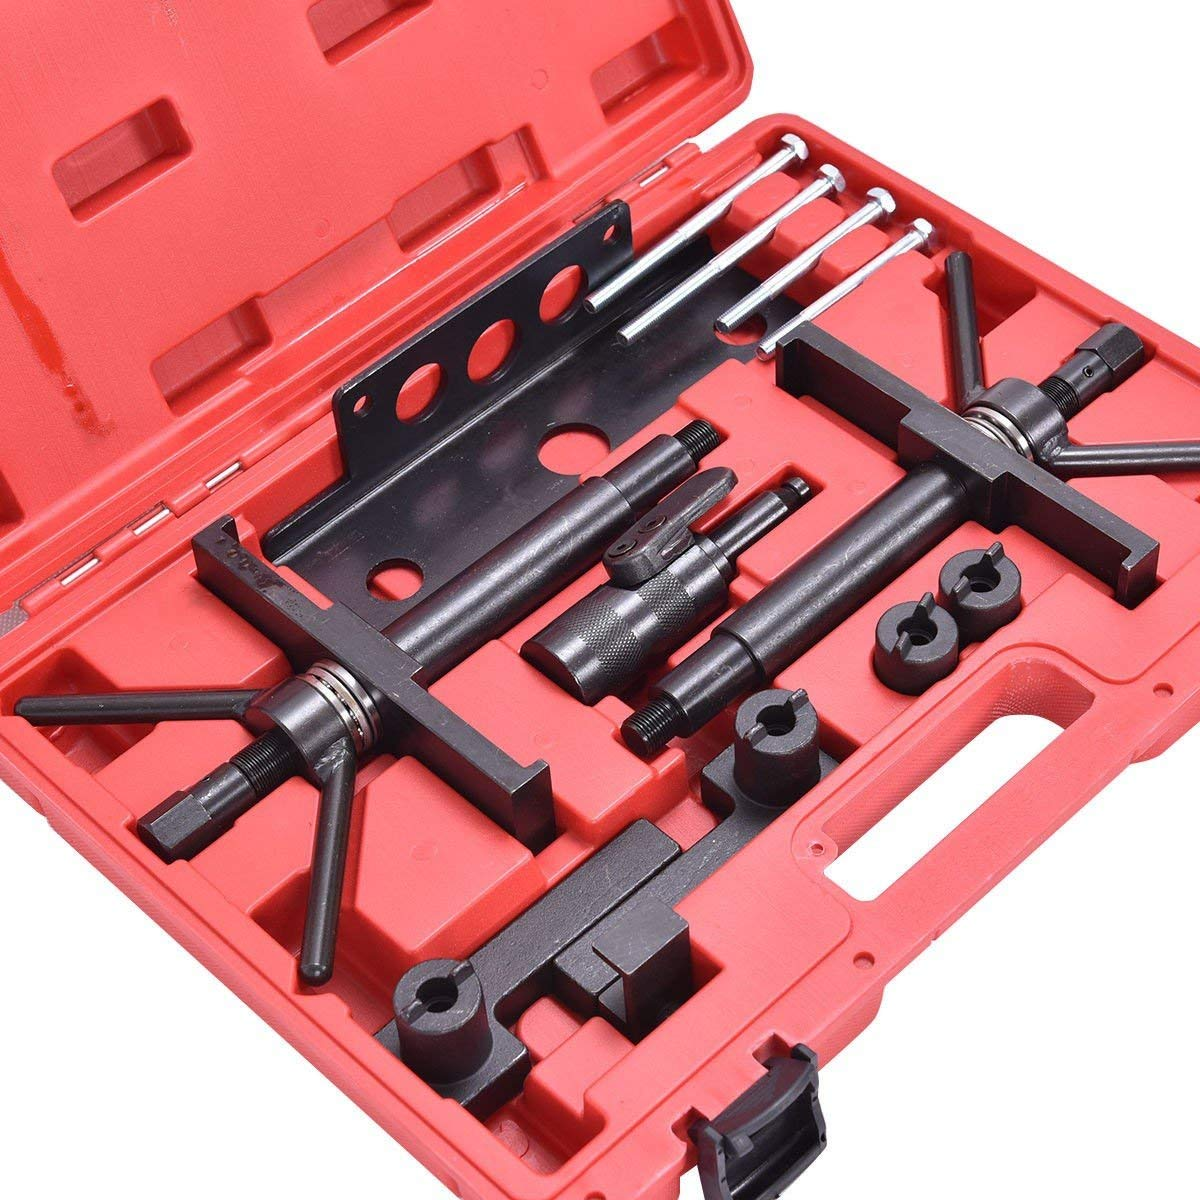 Camshaft Engine Alignment Timing Locking Tool - By Choice Products